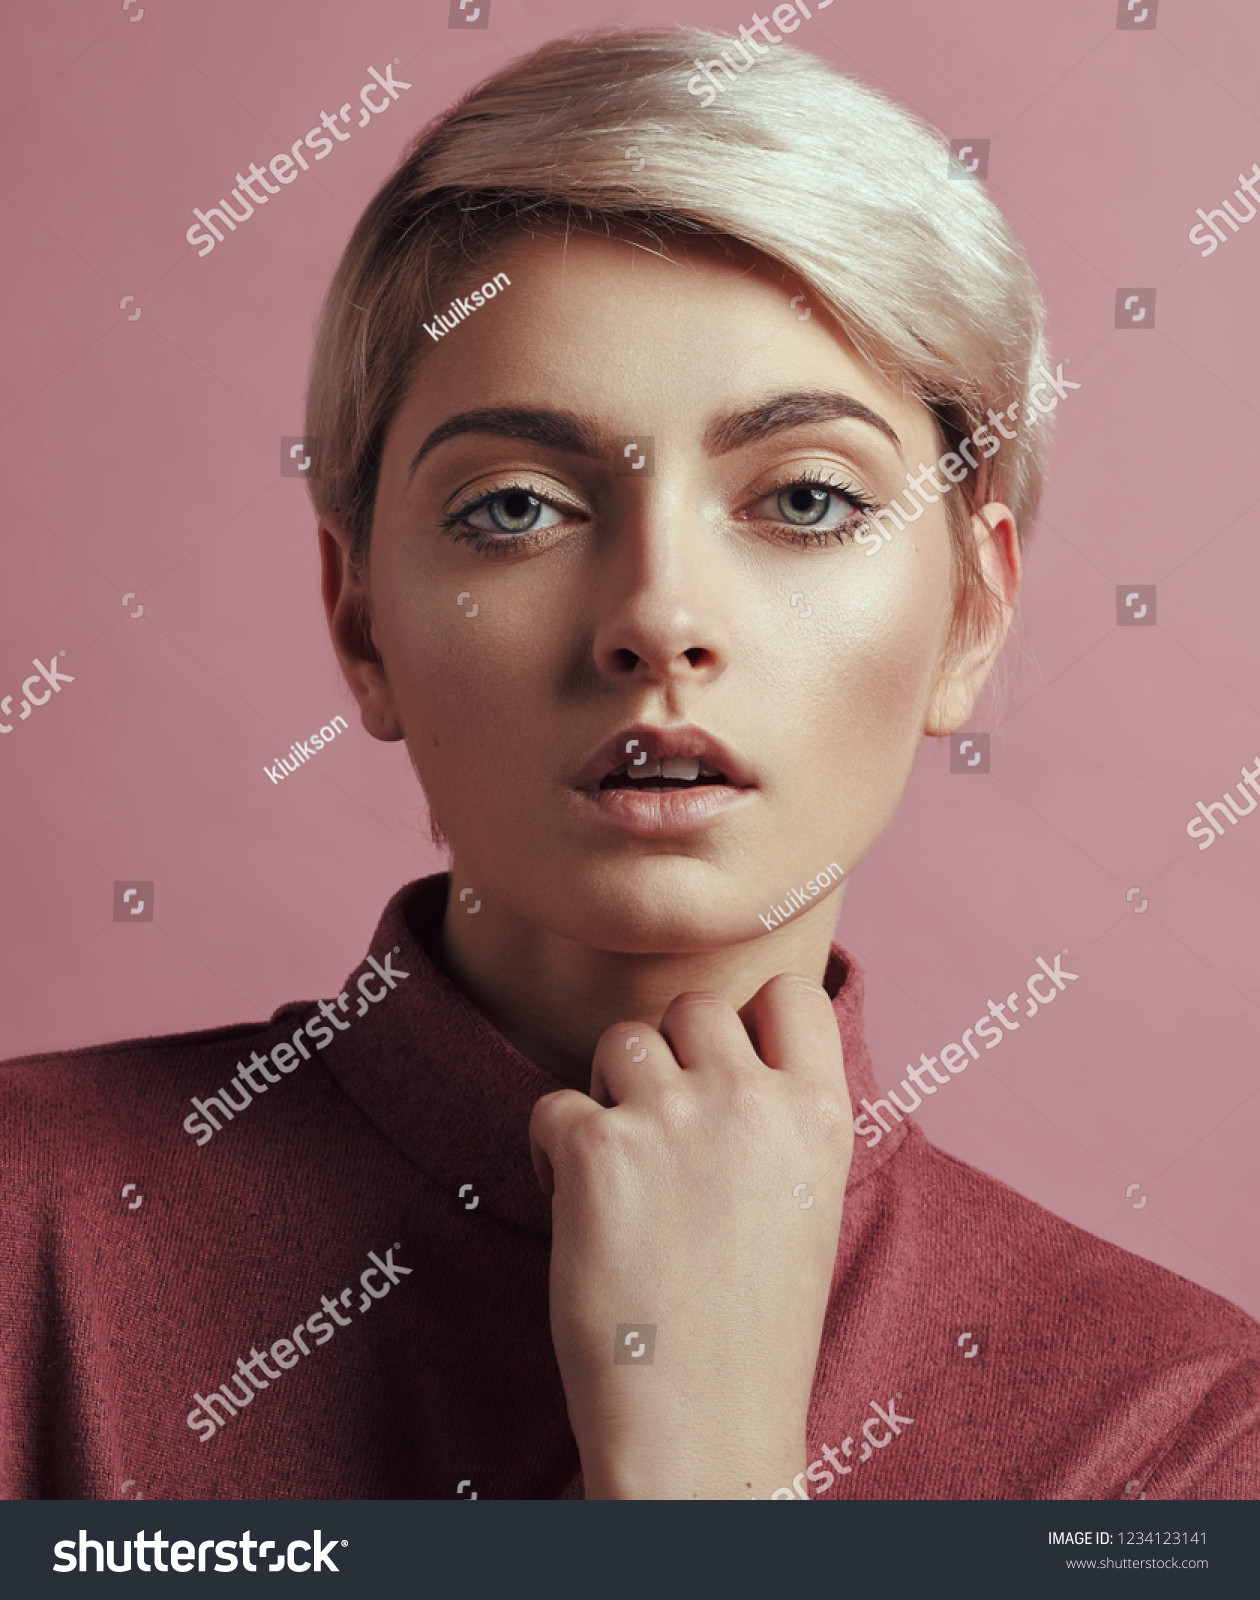 Portrait of fashion woman with blond short hair isolated on pink background #1234123141